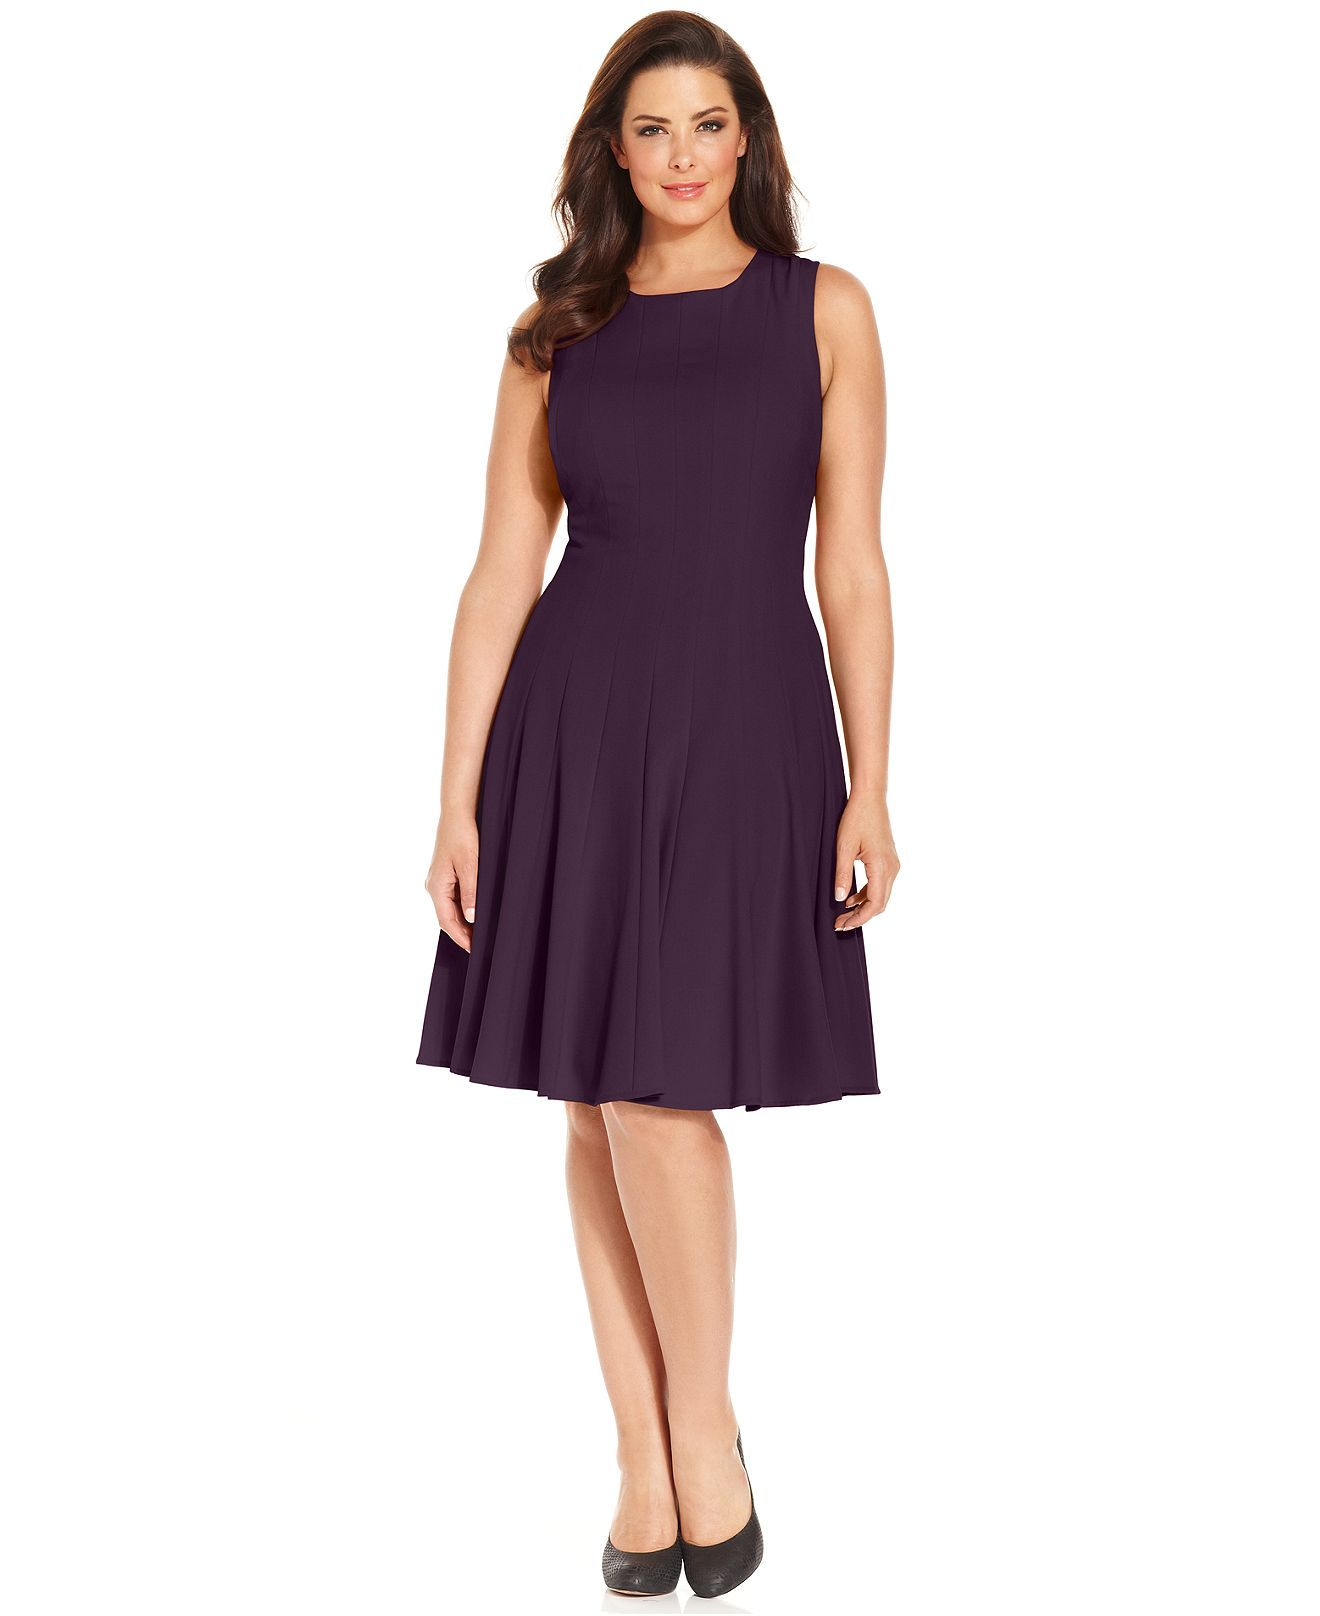 e05736e3a85b4 Calvin Klein Plus Size Pleated A-Line Dress - Plus Size Dresses - Plus  Sizes - Macy s